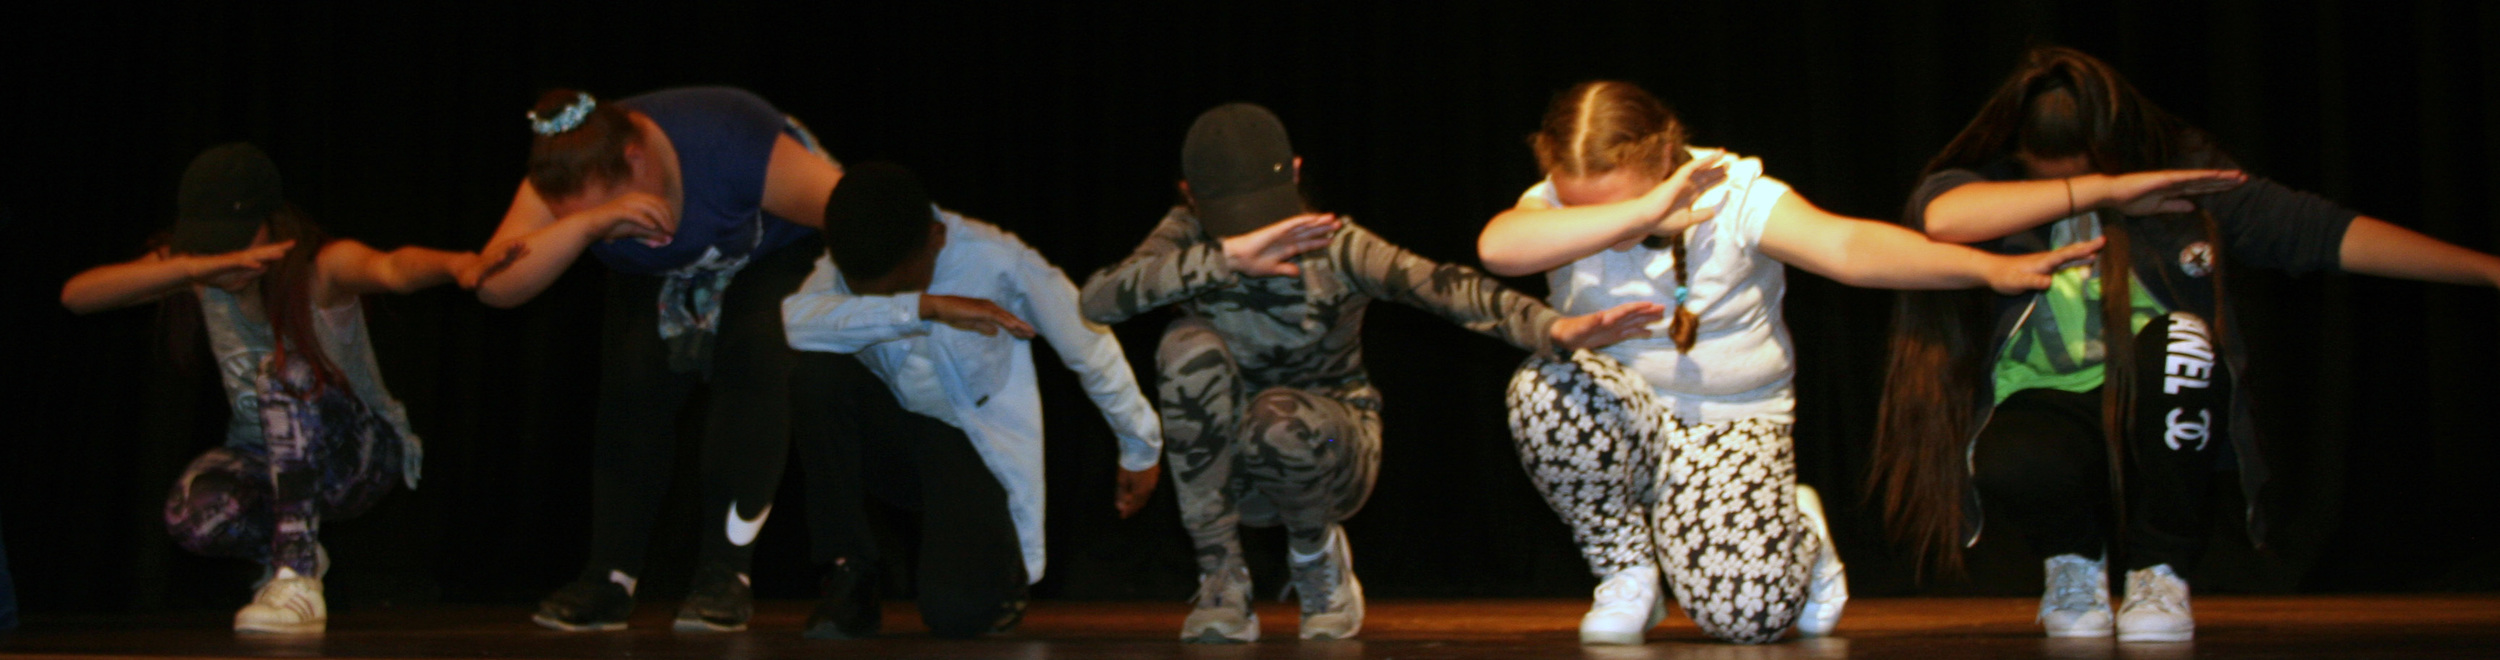 Primary Dance Competition 2016 018.JPG